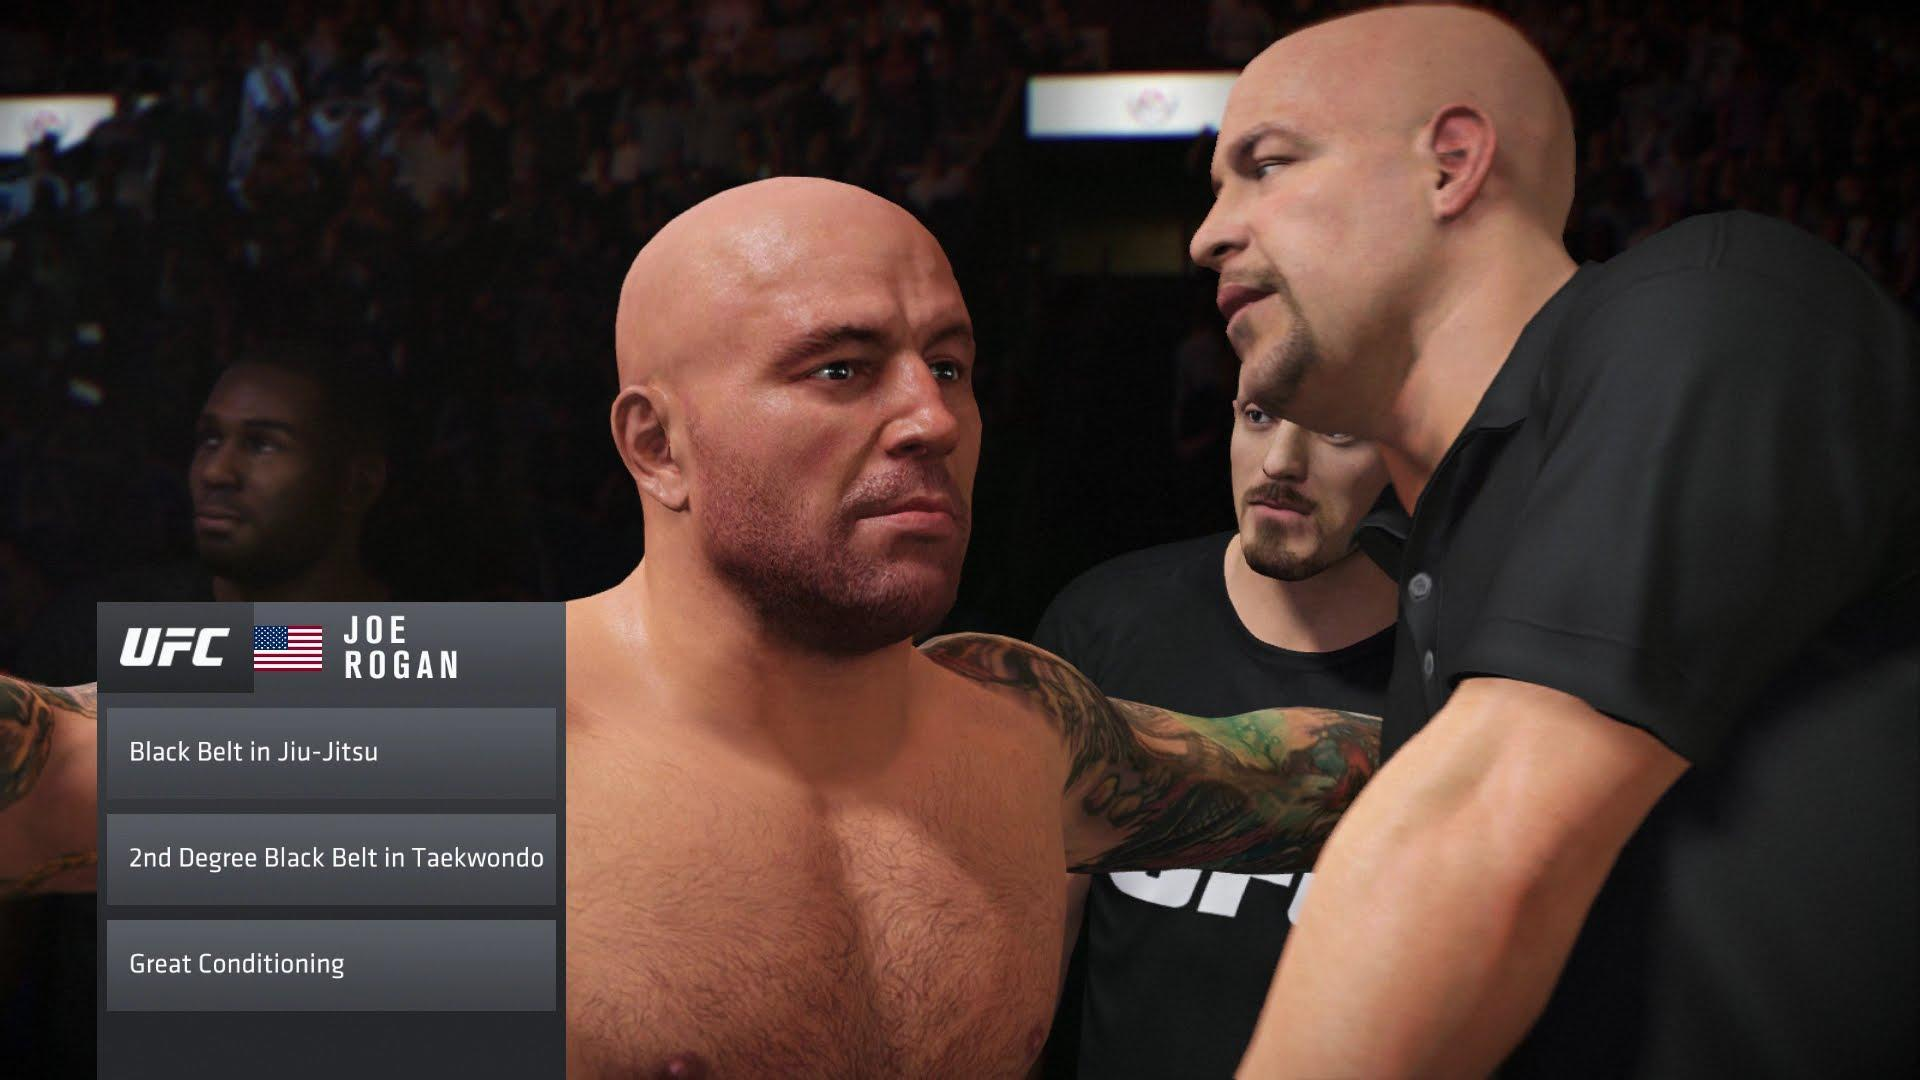 Joe Rogan Is Unlockable In Ea Sports Ufc 2 Sony Ps4